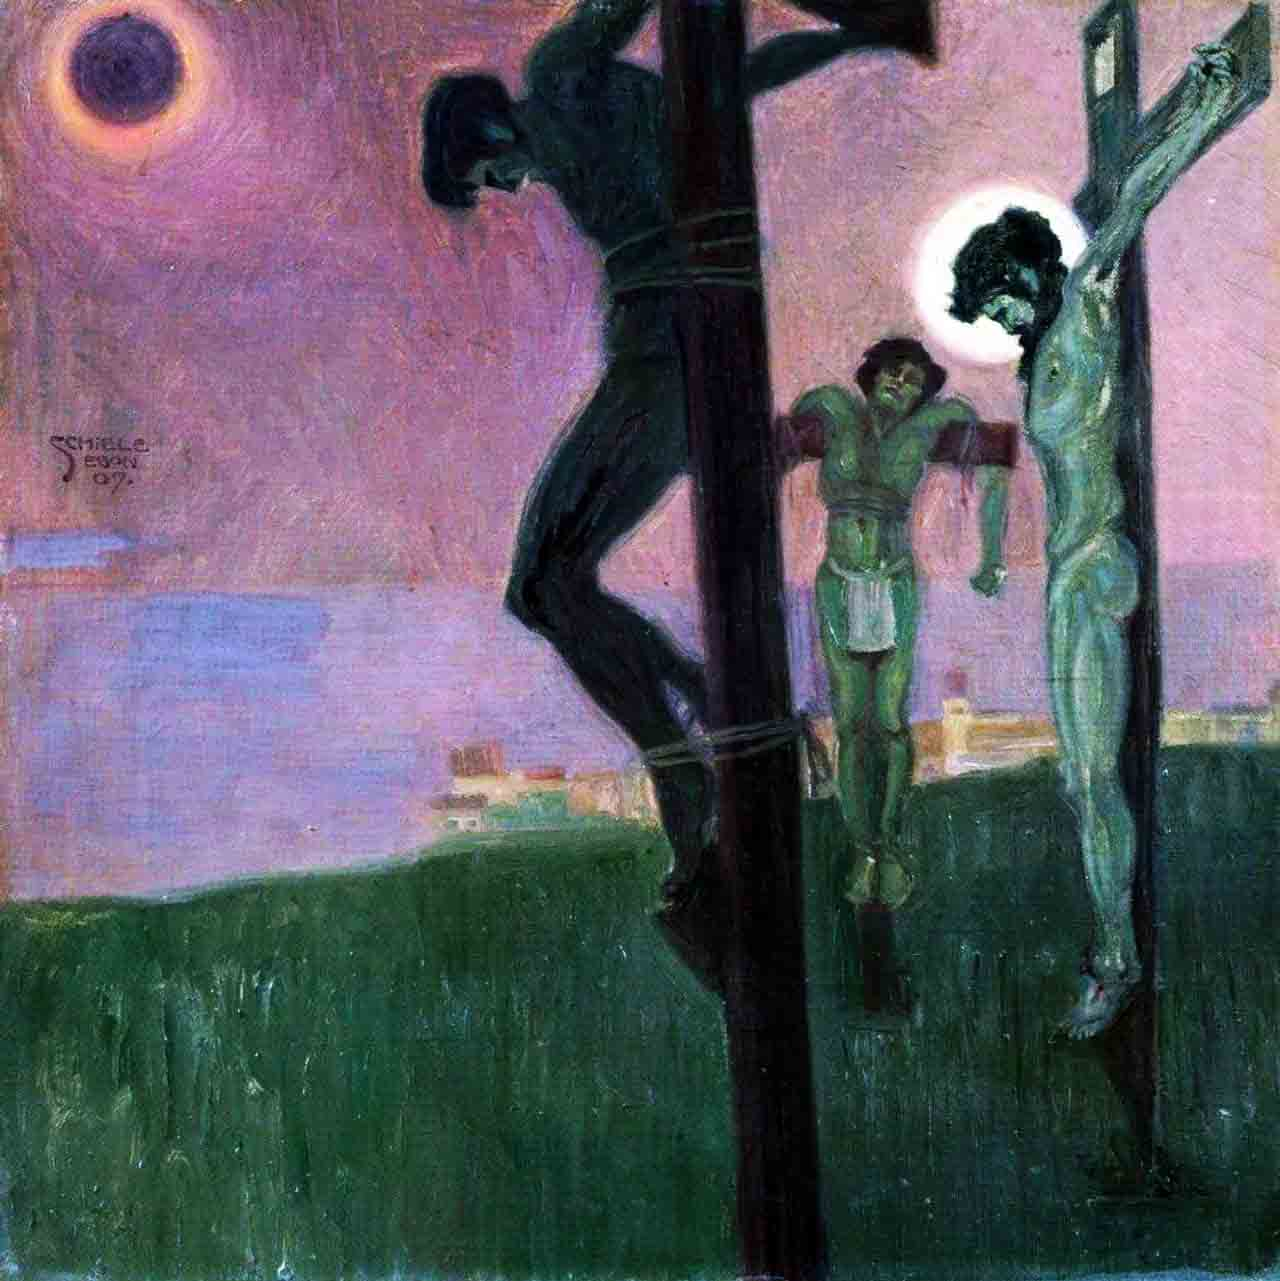 Painting Of The Eclipse And Crucifixion